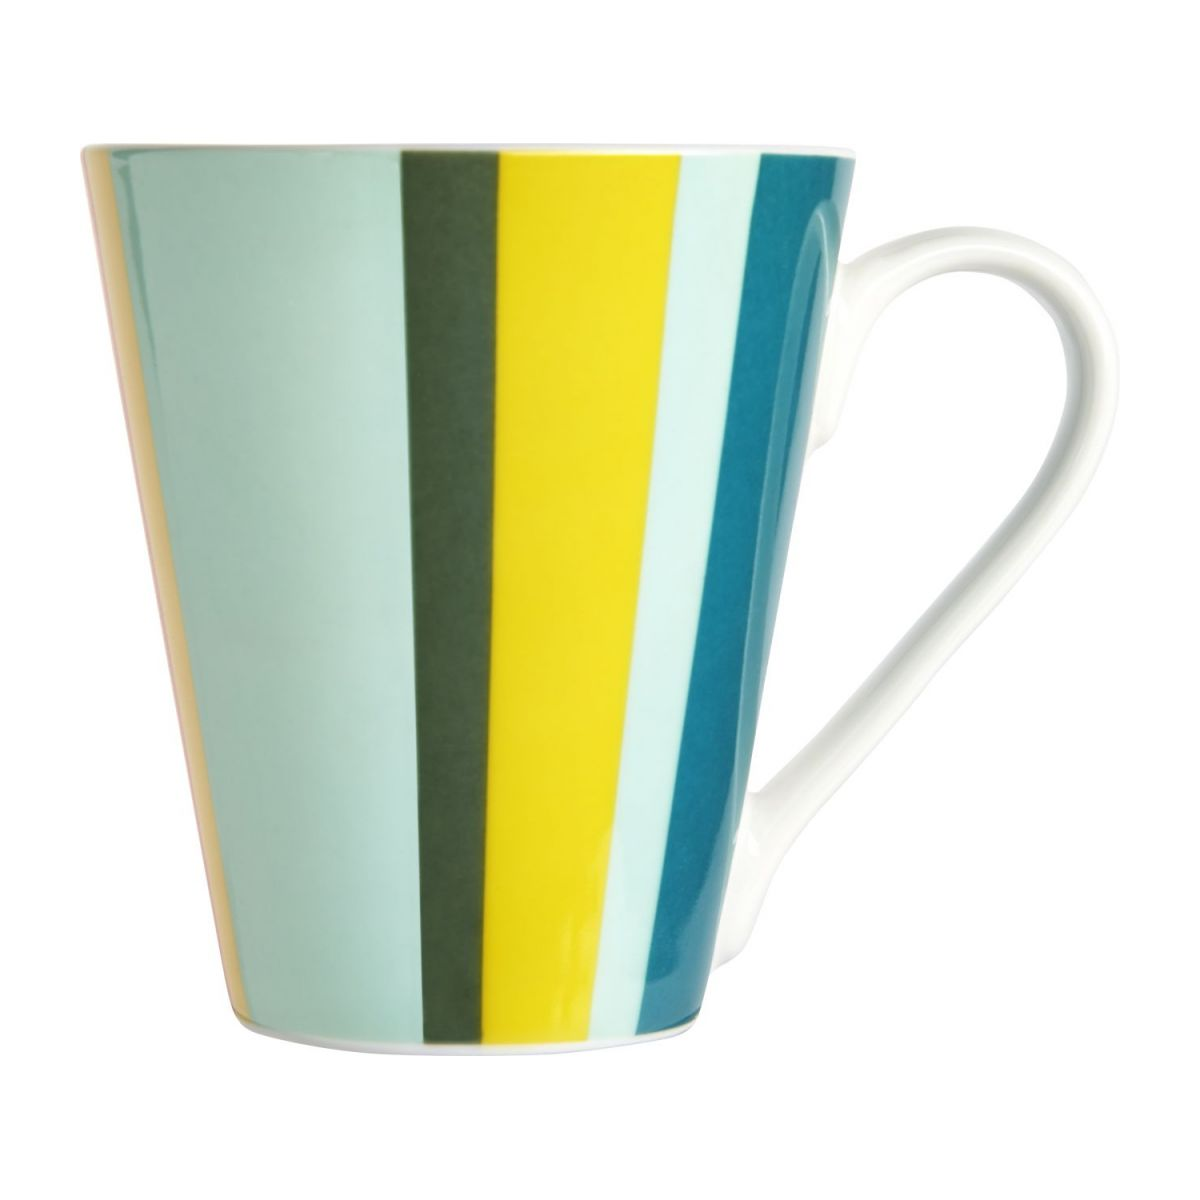 Set of 4 mugs n°4